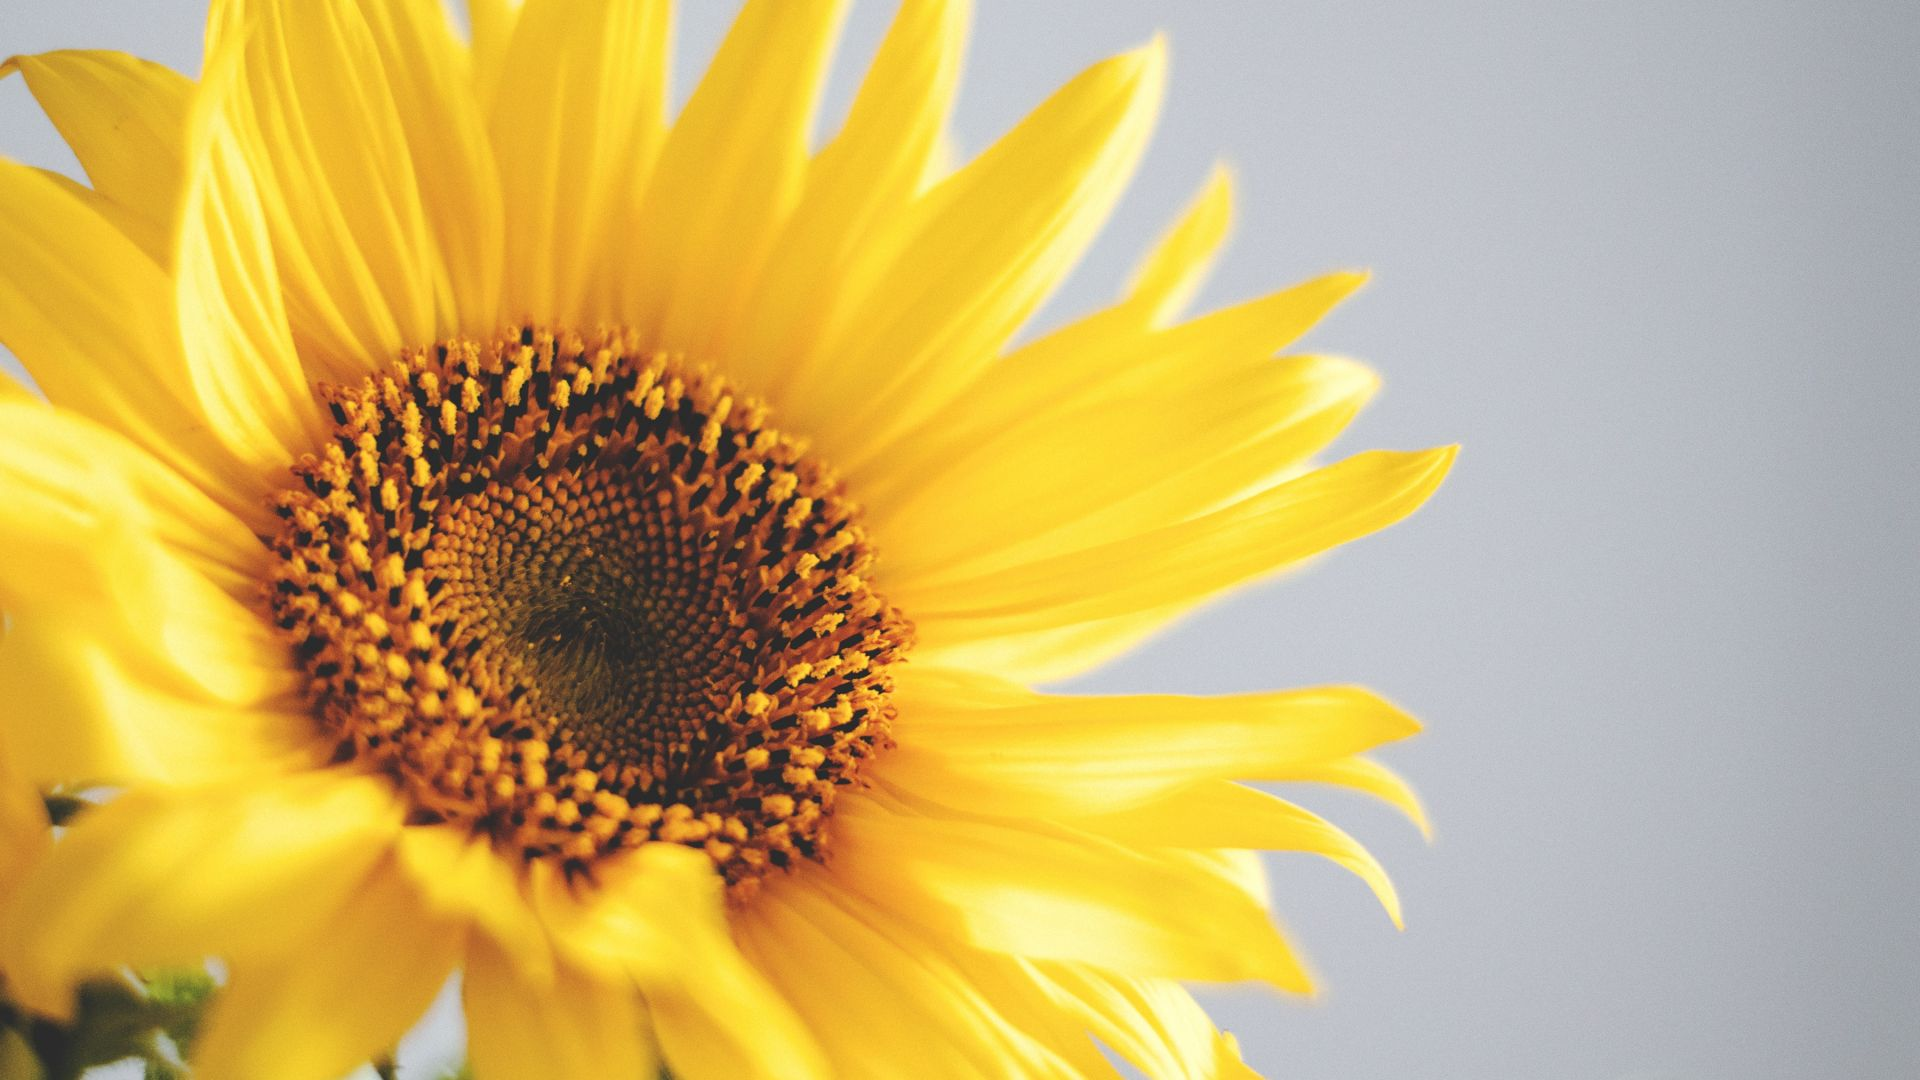 sunflower, 5k, 4k wallpaper, yellow (horizontal)